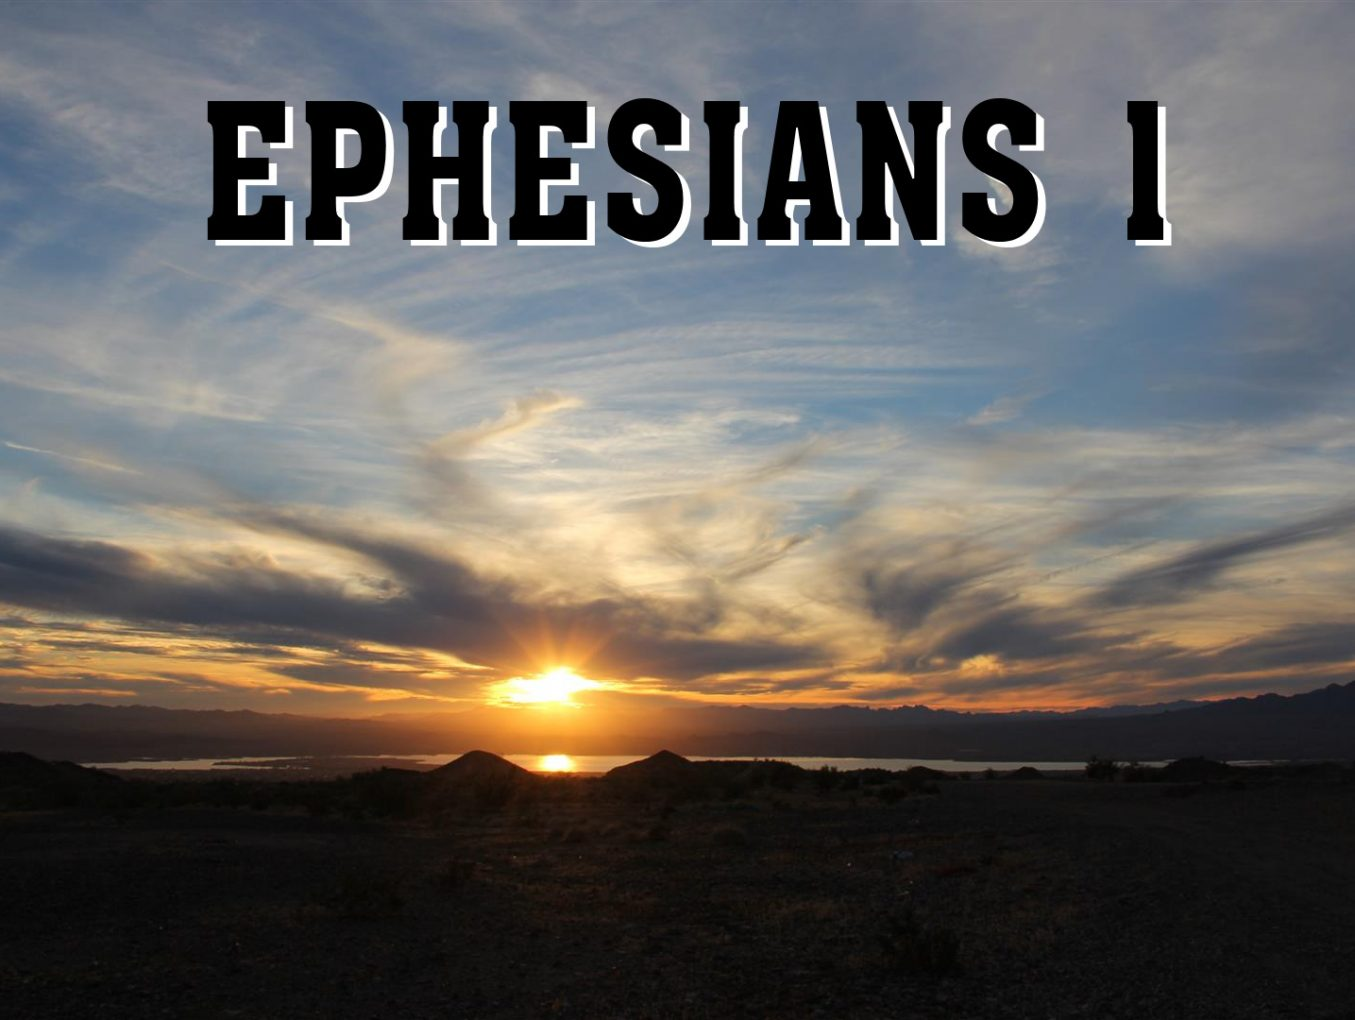 Men's Bible Study on EPHESIANS 1 (2011-08-23)